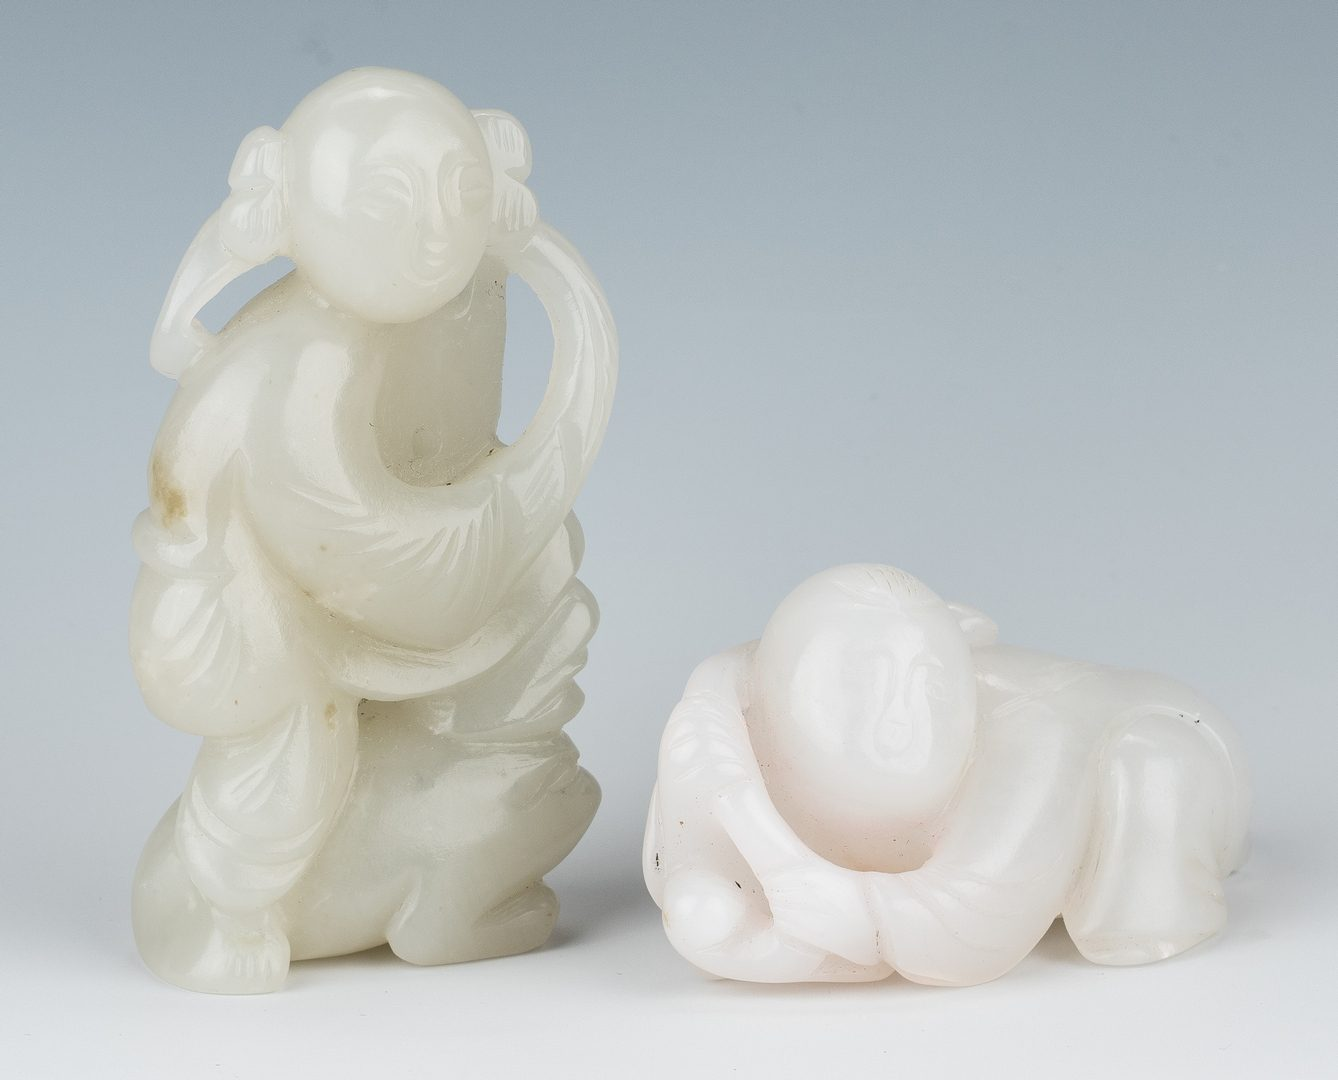 Lot 14: Carved Jade Boulder & 2 Jade Figures